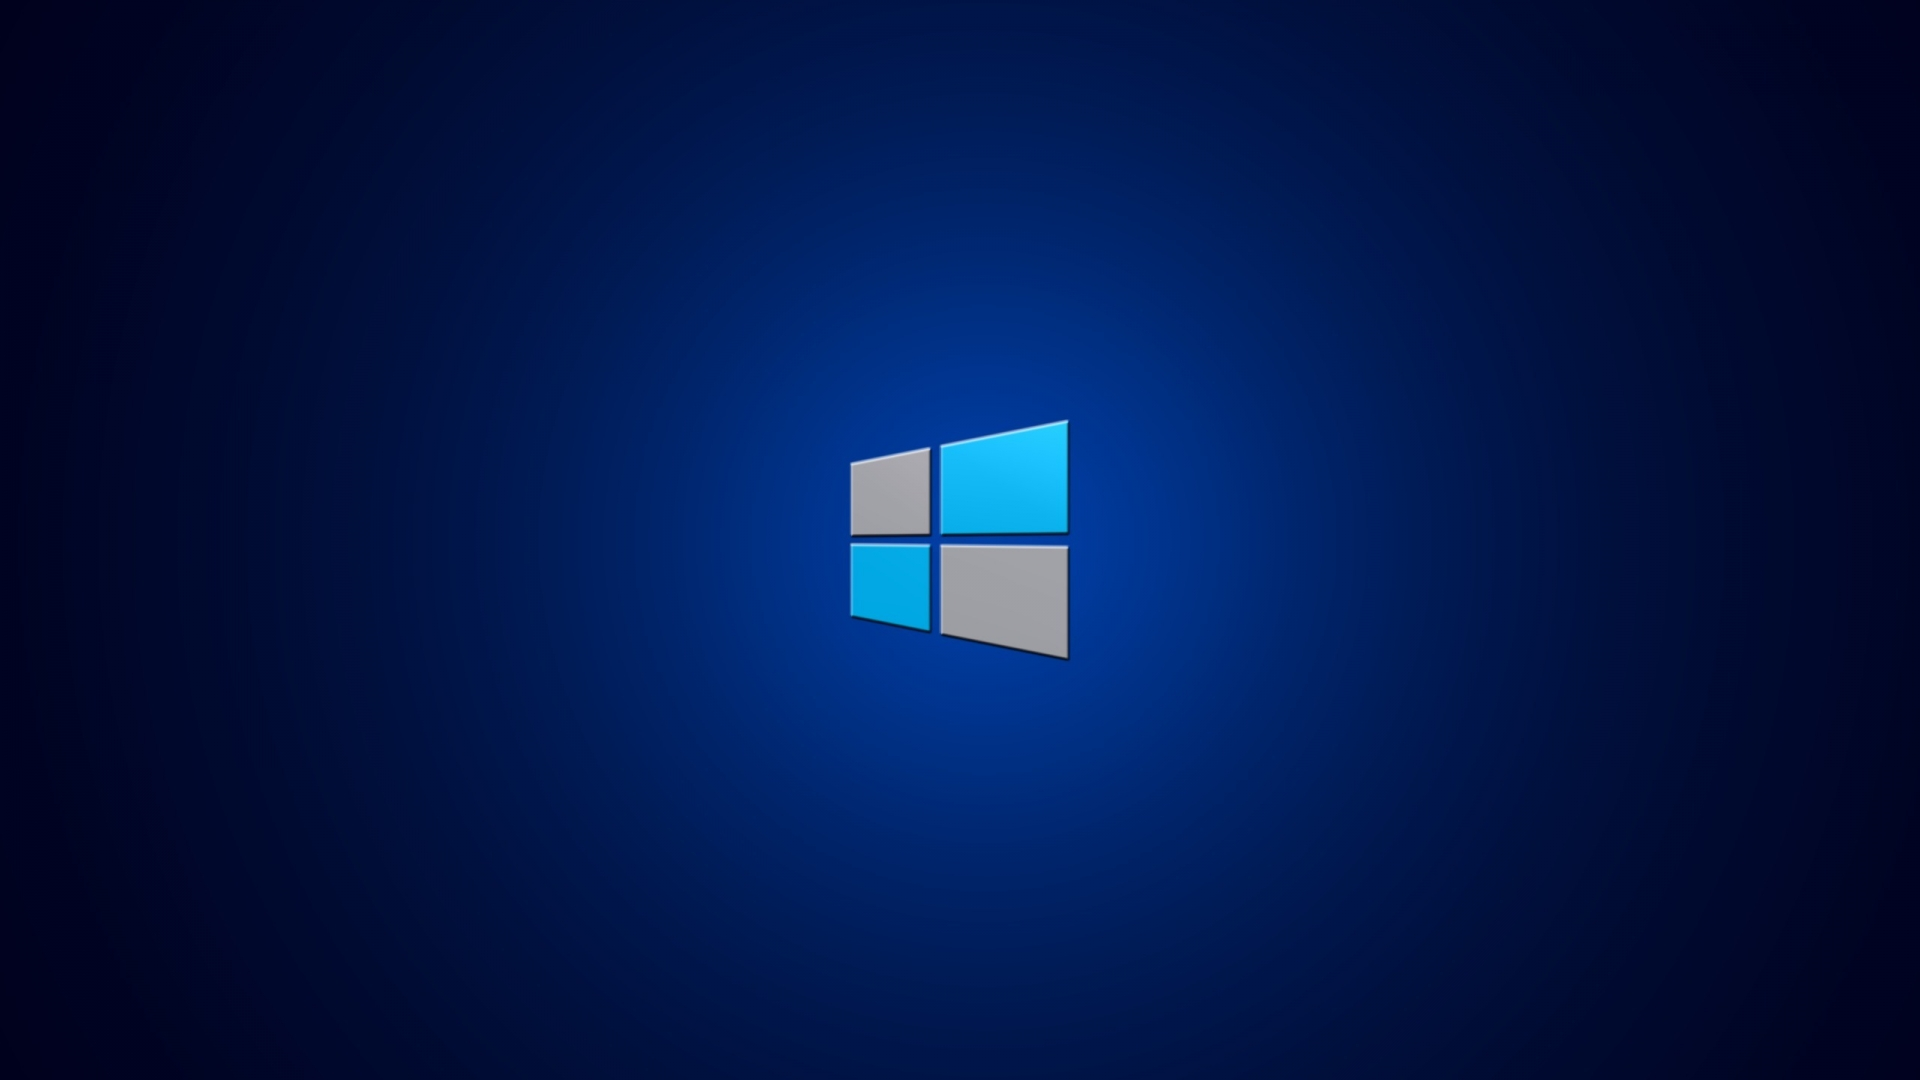 Windows 8 Background Wallpaper HD 1920x1080